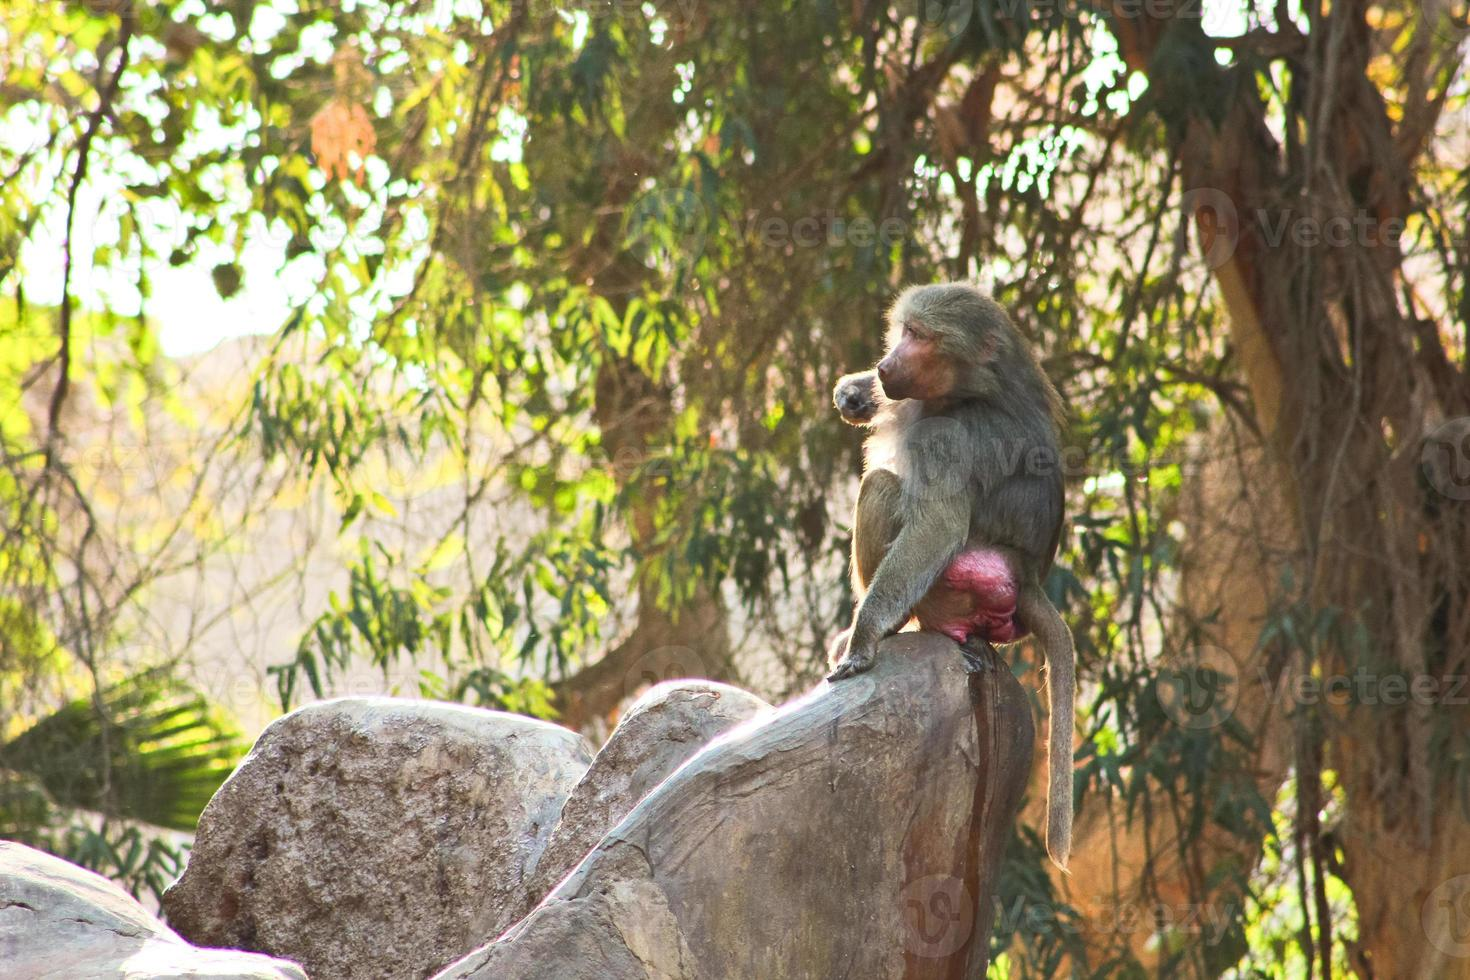 Baboon Monkey chilling in the zoo photo